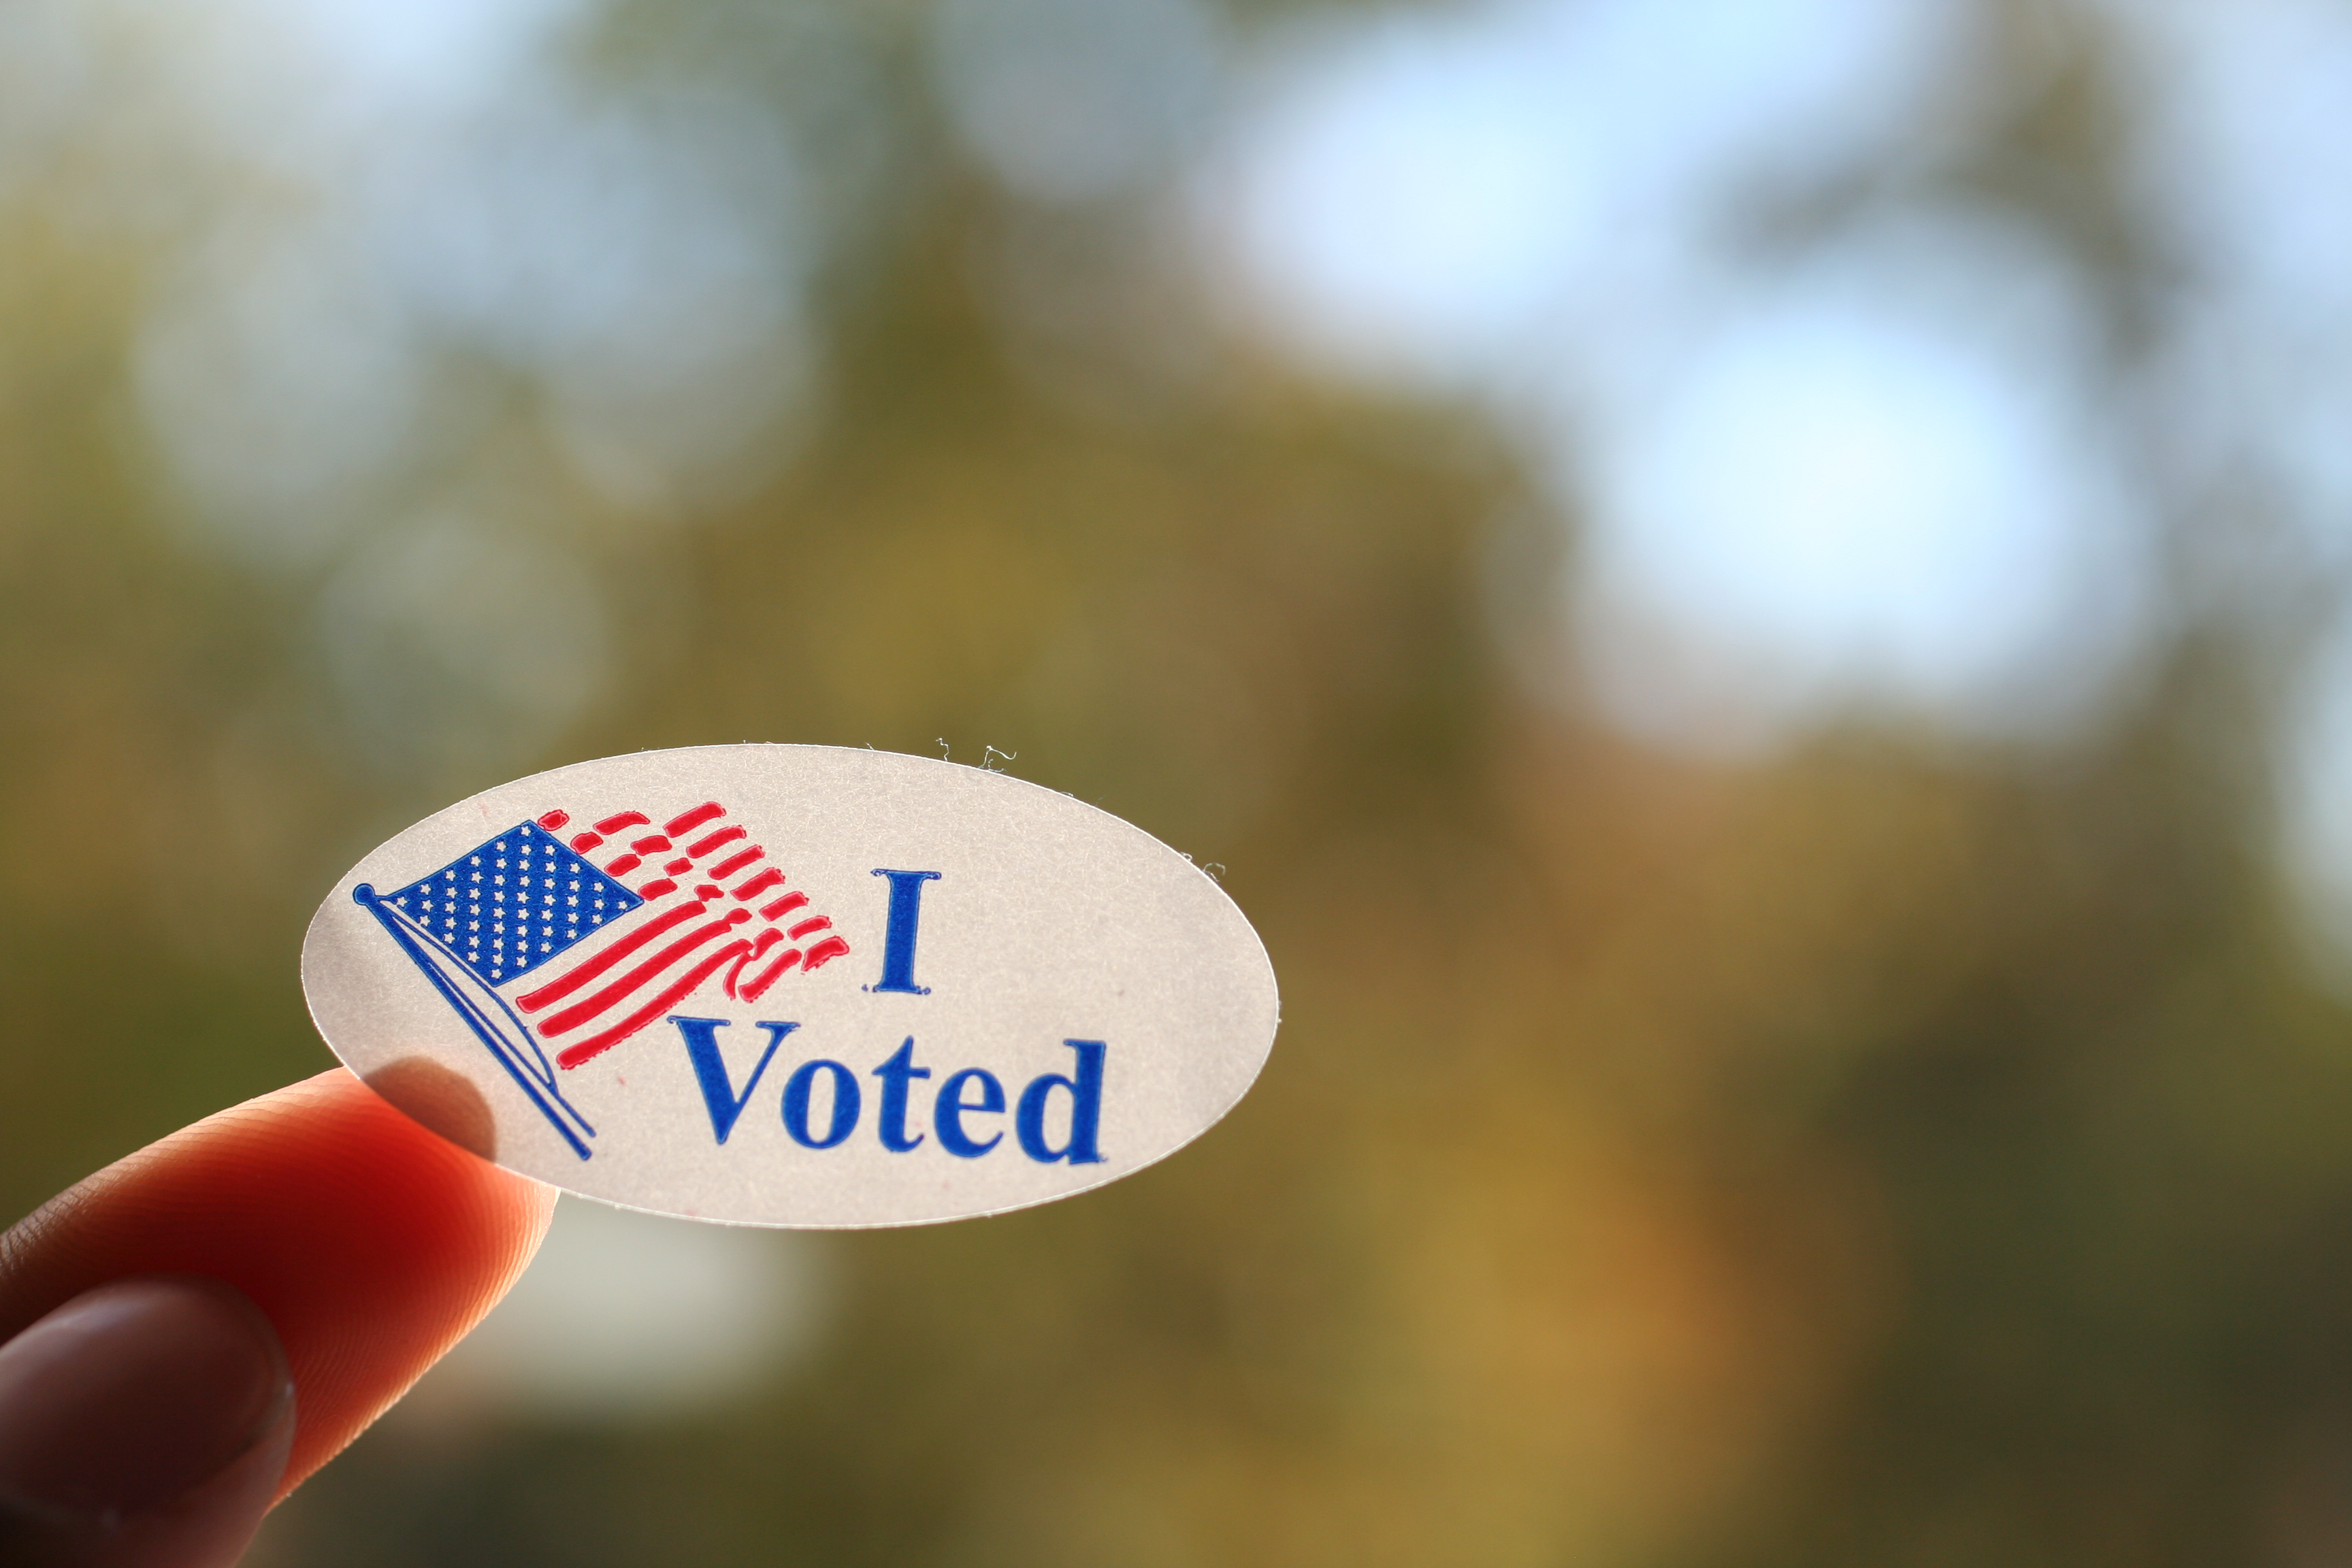 Louisiana voters are heading to the polls And their I Voted stickers are showing up on the popular auction site ebay The sticker features artwork by